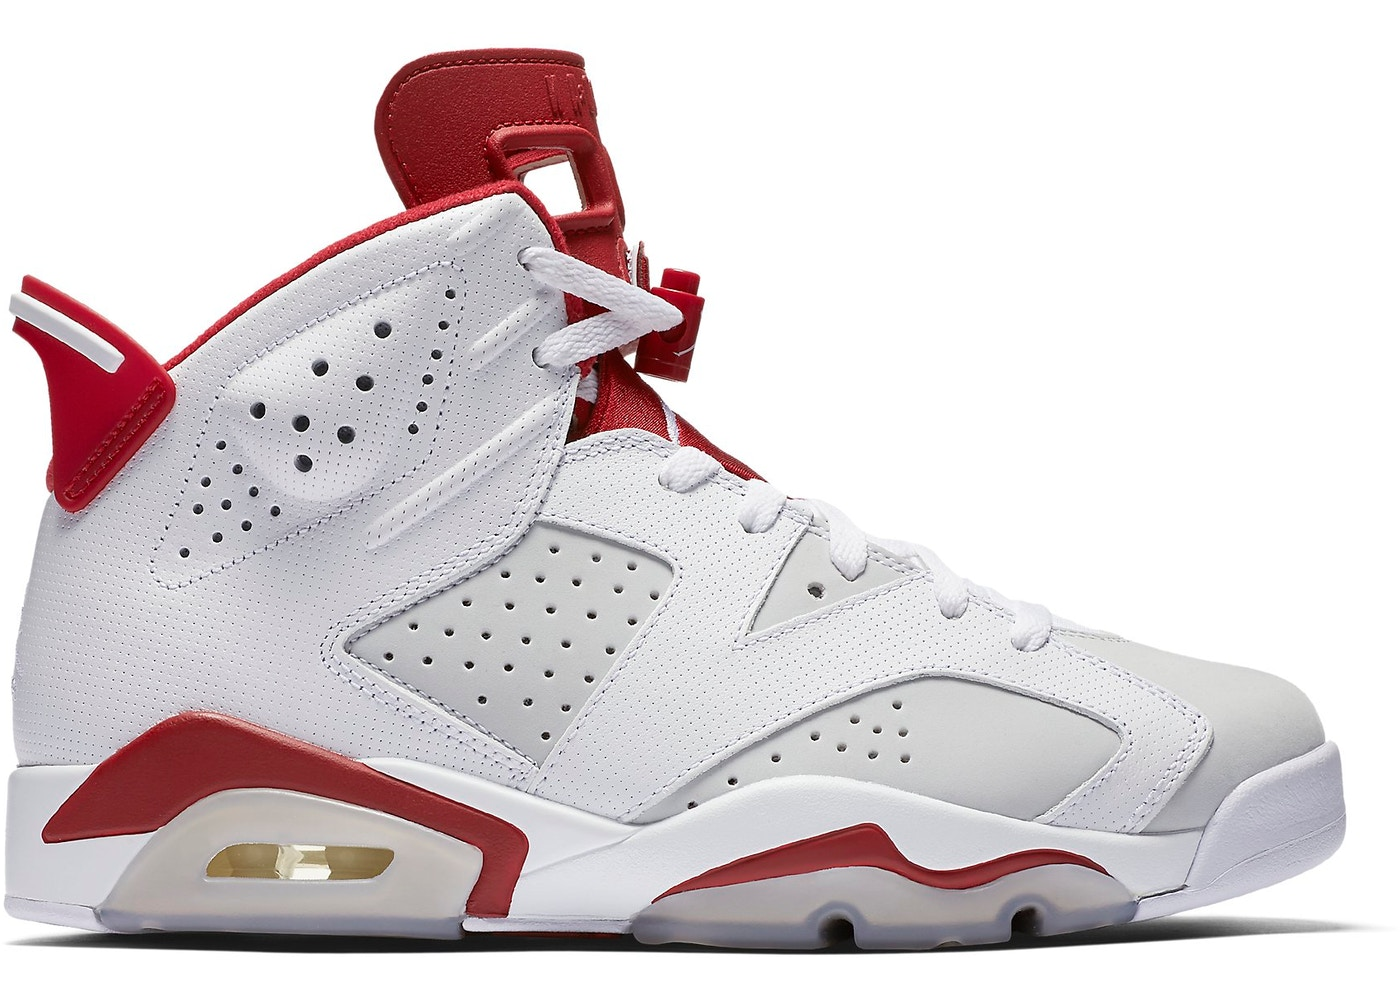 purchase cheap 47097 5b6fd Air Jordan 6 Size 17 Shoes - Release Date